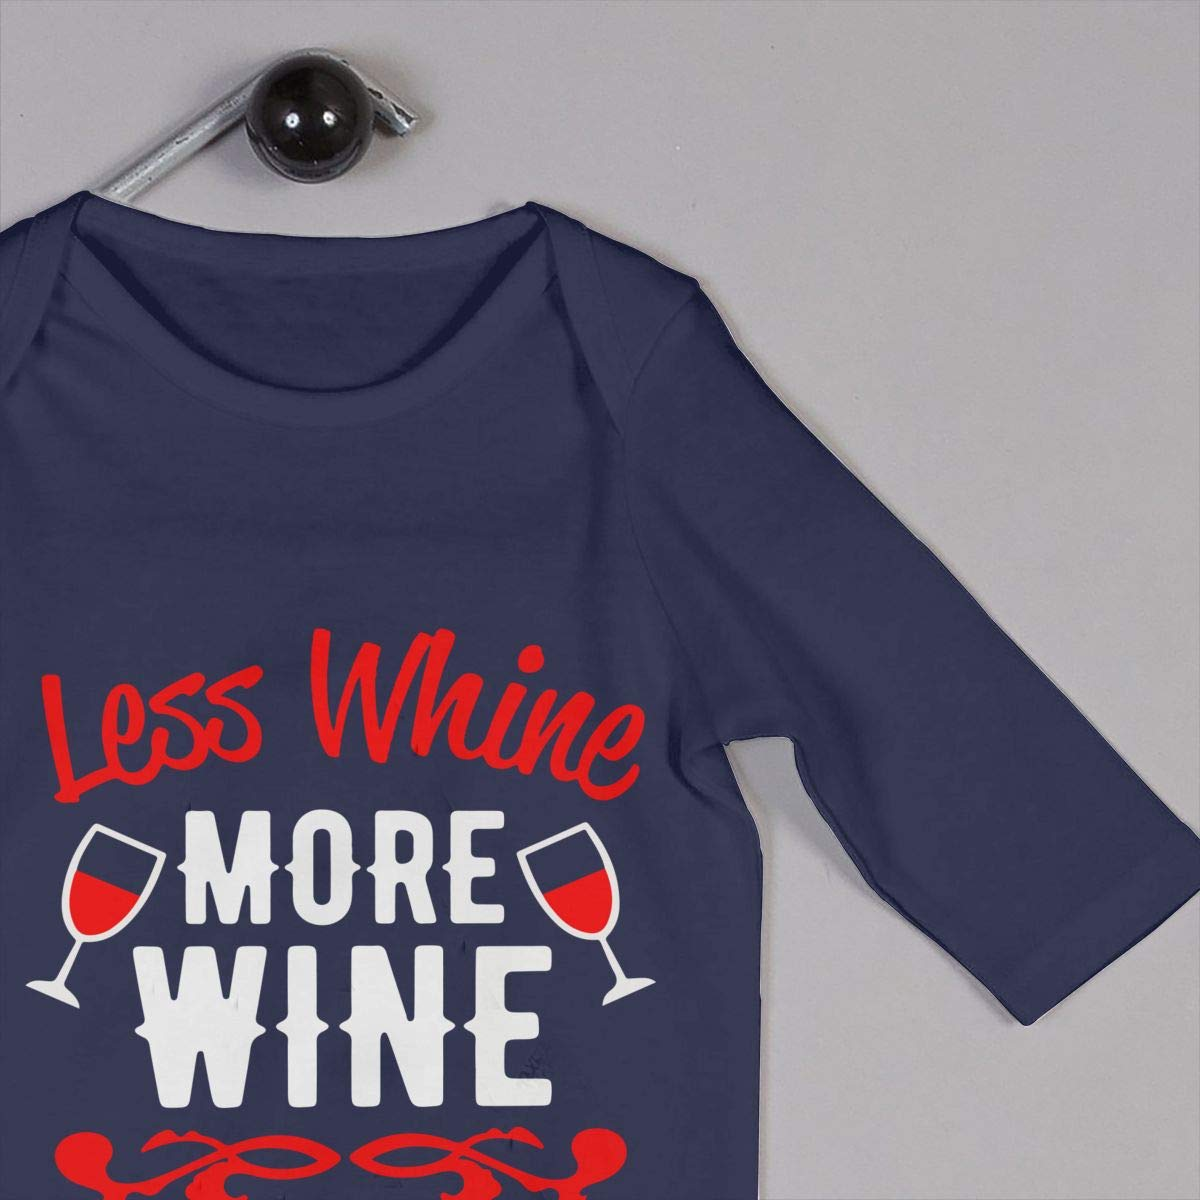 Mri-le1 Newborn Kids Organic Coverall Less Whine More Wine 1 Baby Rompers